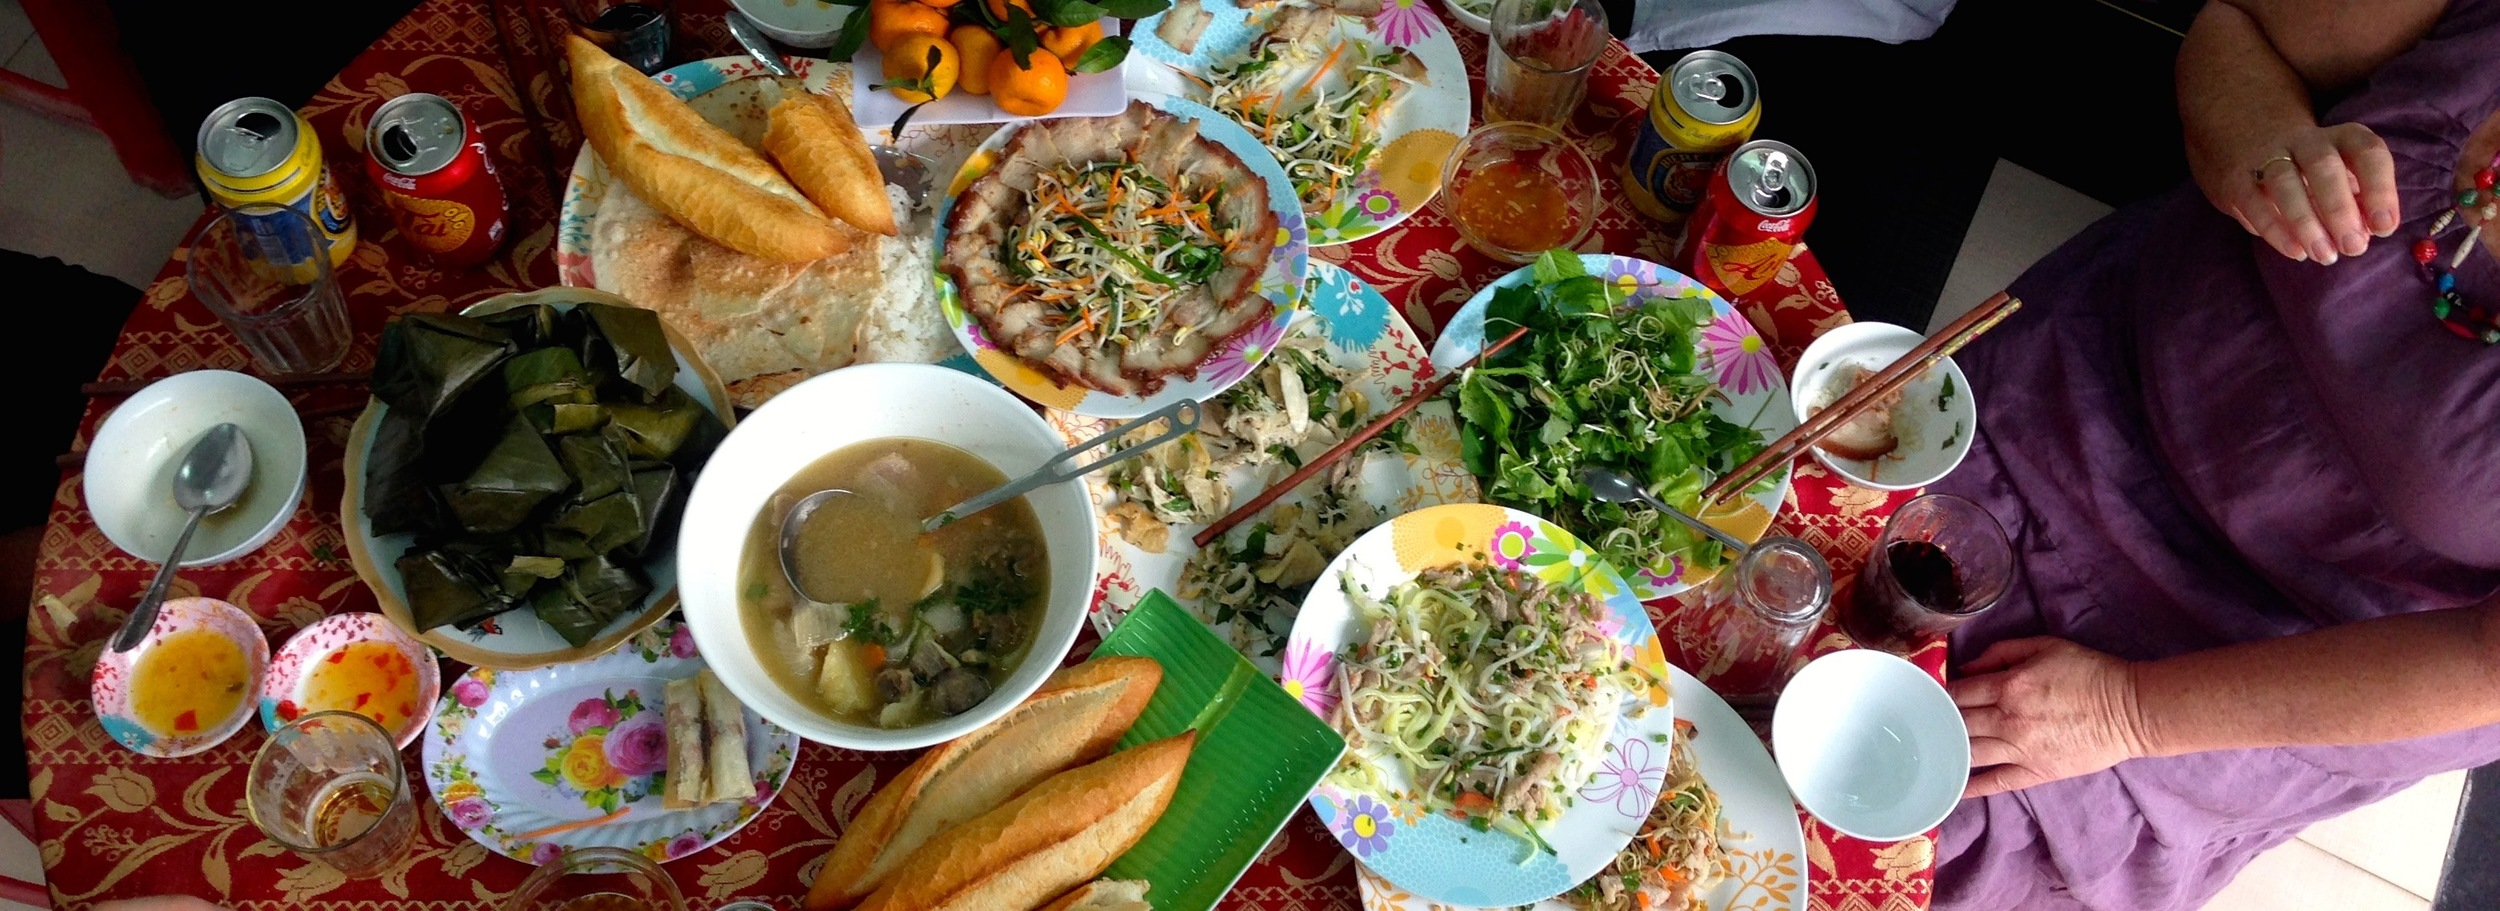 A fantastic feast that we were invited to partake in at our homestay. This was one of 4 tables piled so high with food that the plates had to overlap just to fit.